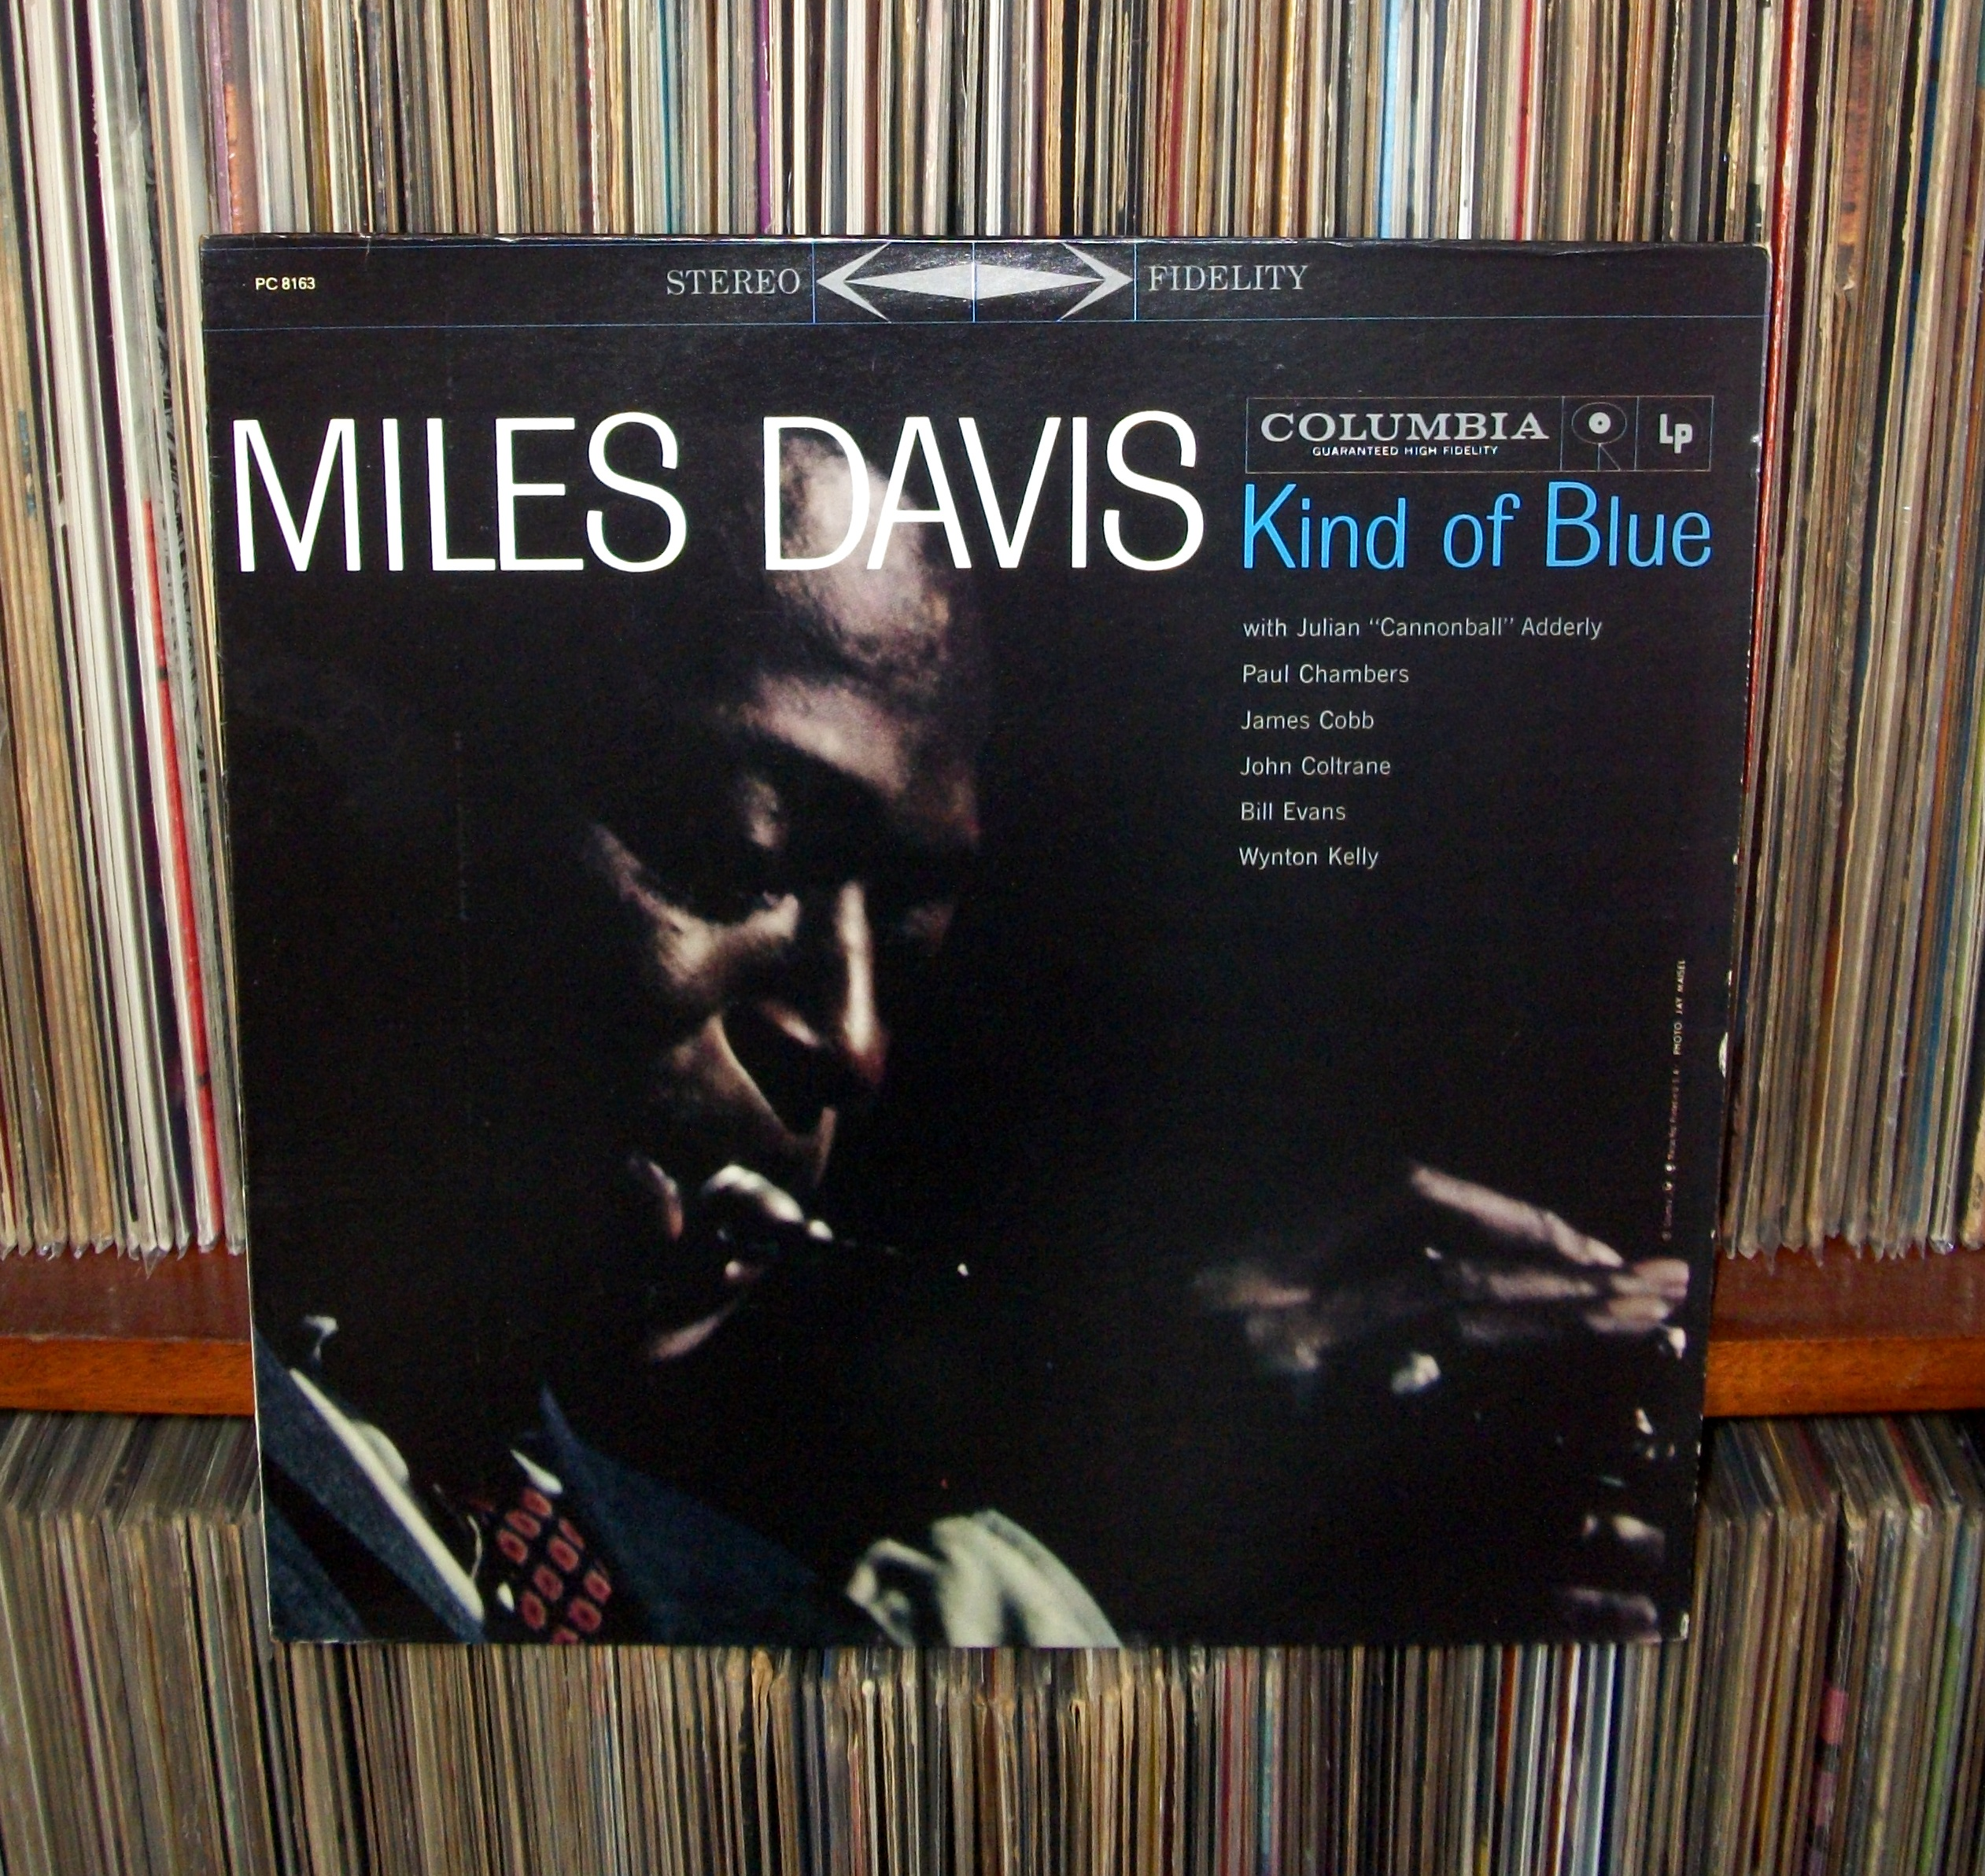 analysis miles davis kind blue Kind of blue brought together seven now-legendary musicians in the prime of their careers: tenor saxophonist john coltrane, alto saxophonist julian cannonball adderley, pianists bill evans and wynton kelly, bassist paul chambers, drummer jimmy cobb and, of course, trumpeter miles davis.